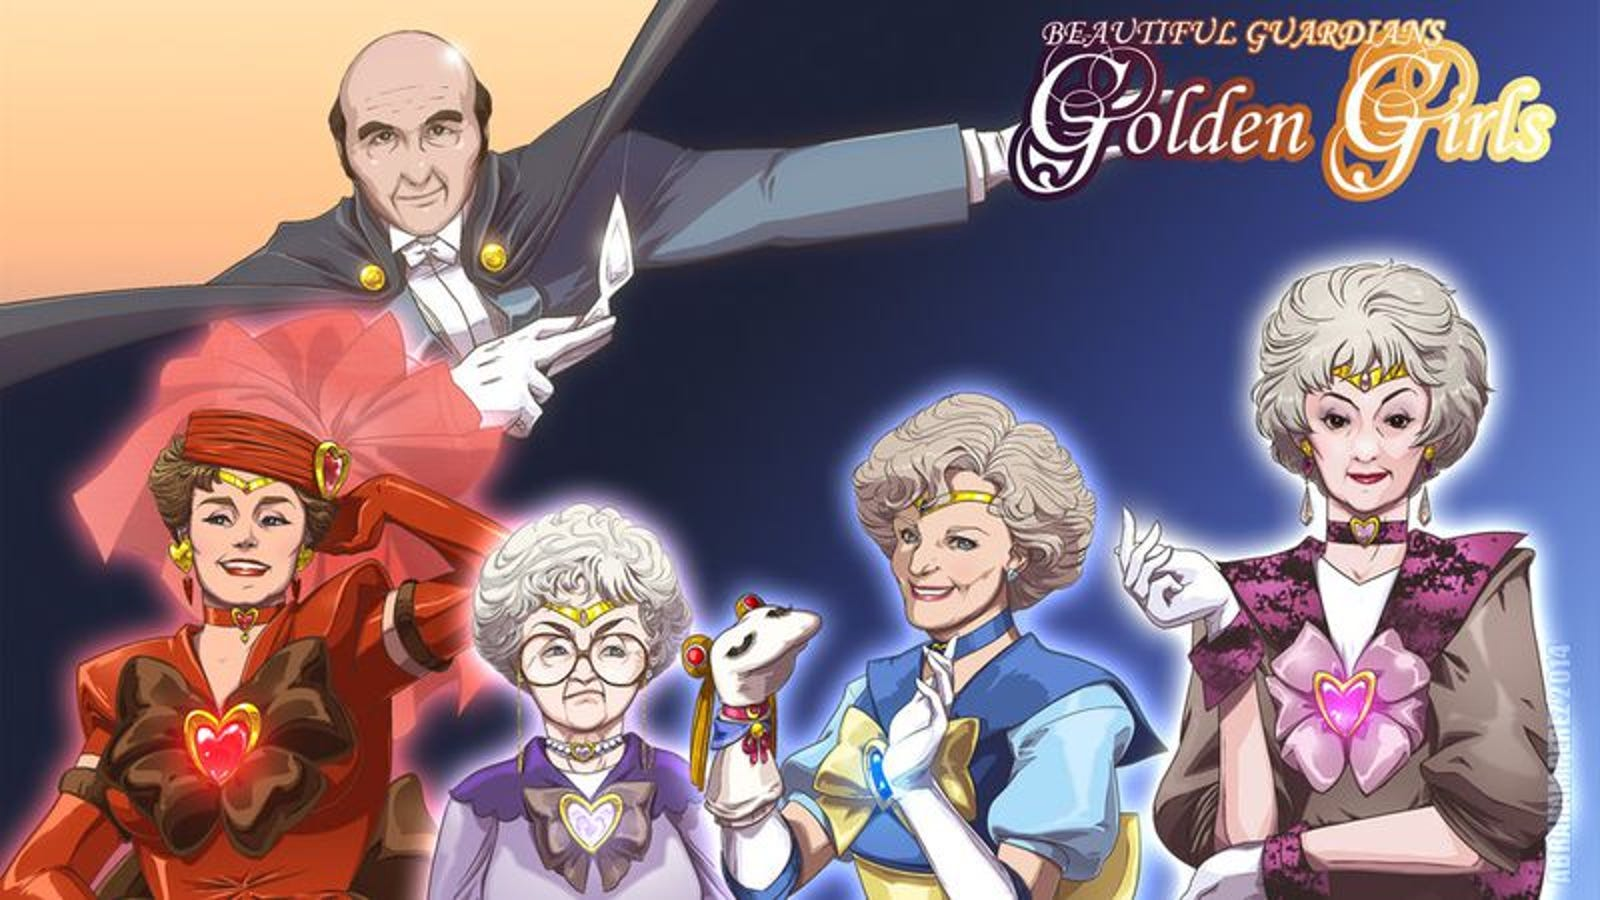 These Sailor Moon Golden Girls Drawings Thank You For Fighting Evil By Moonlight